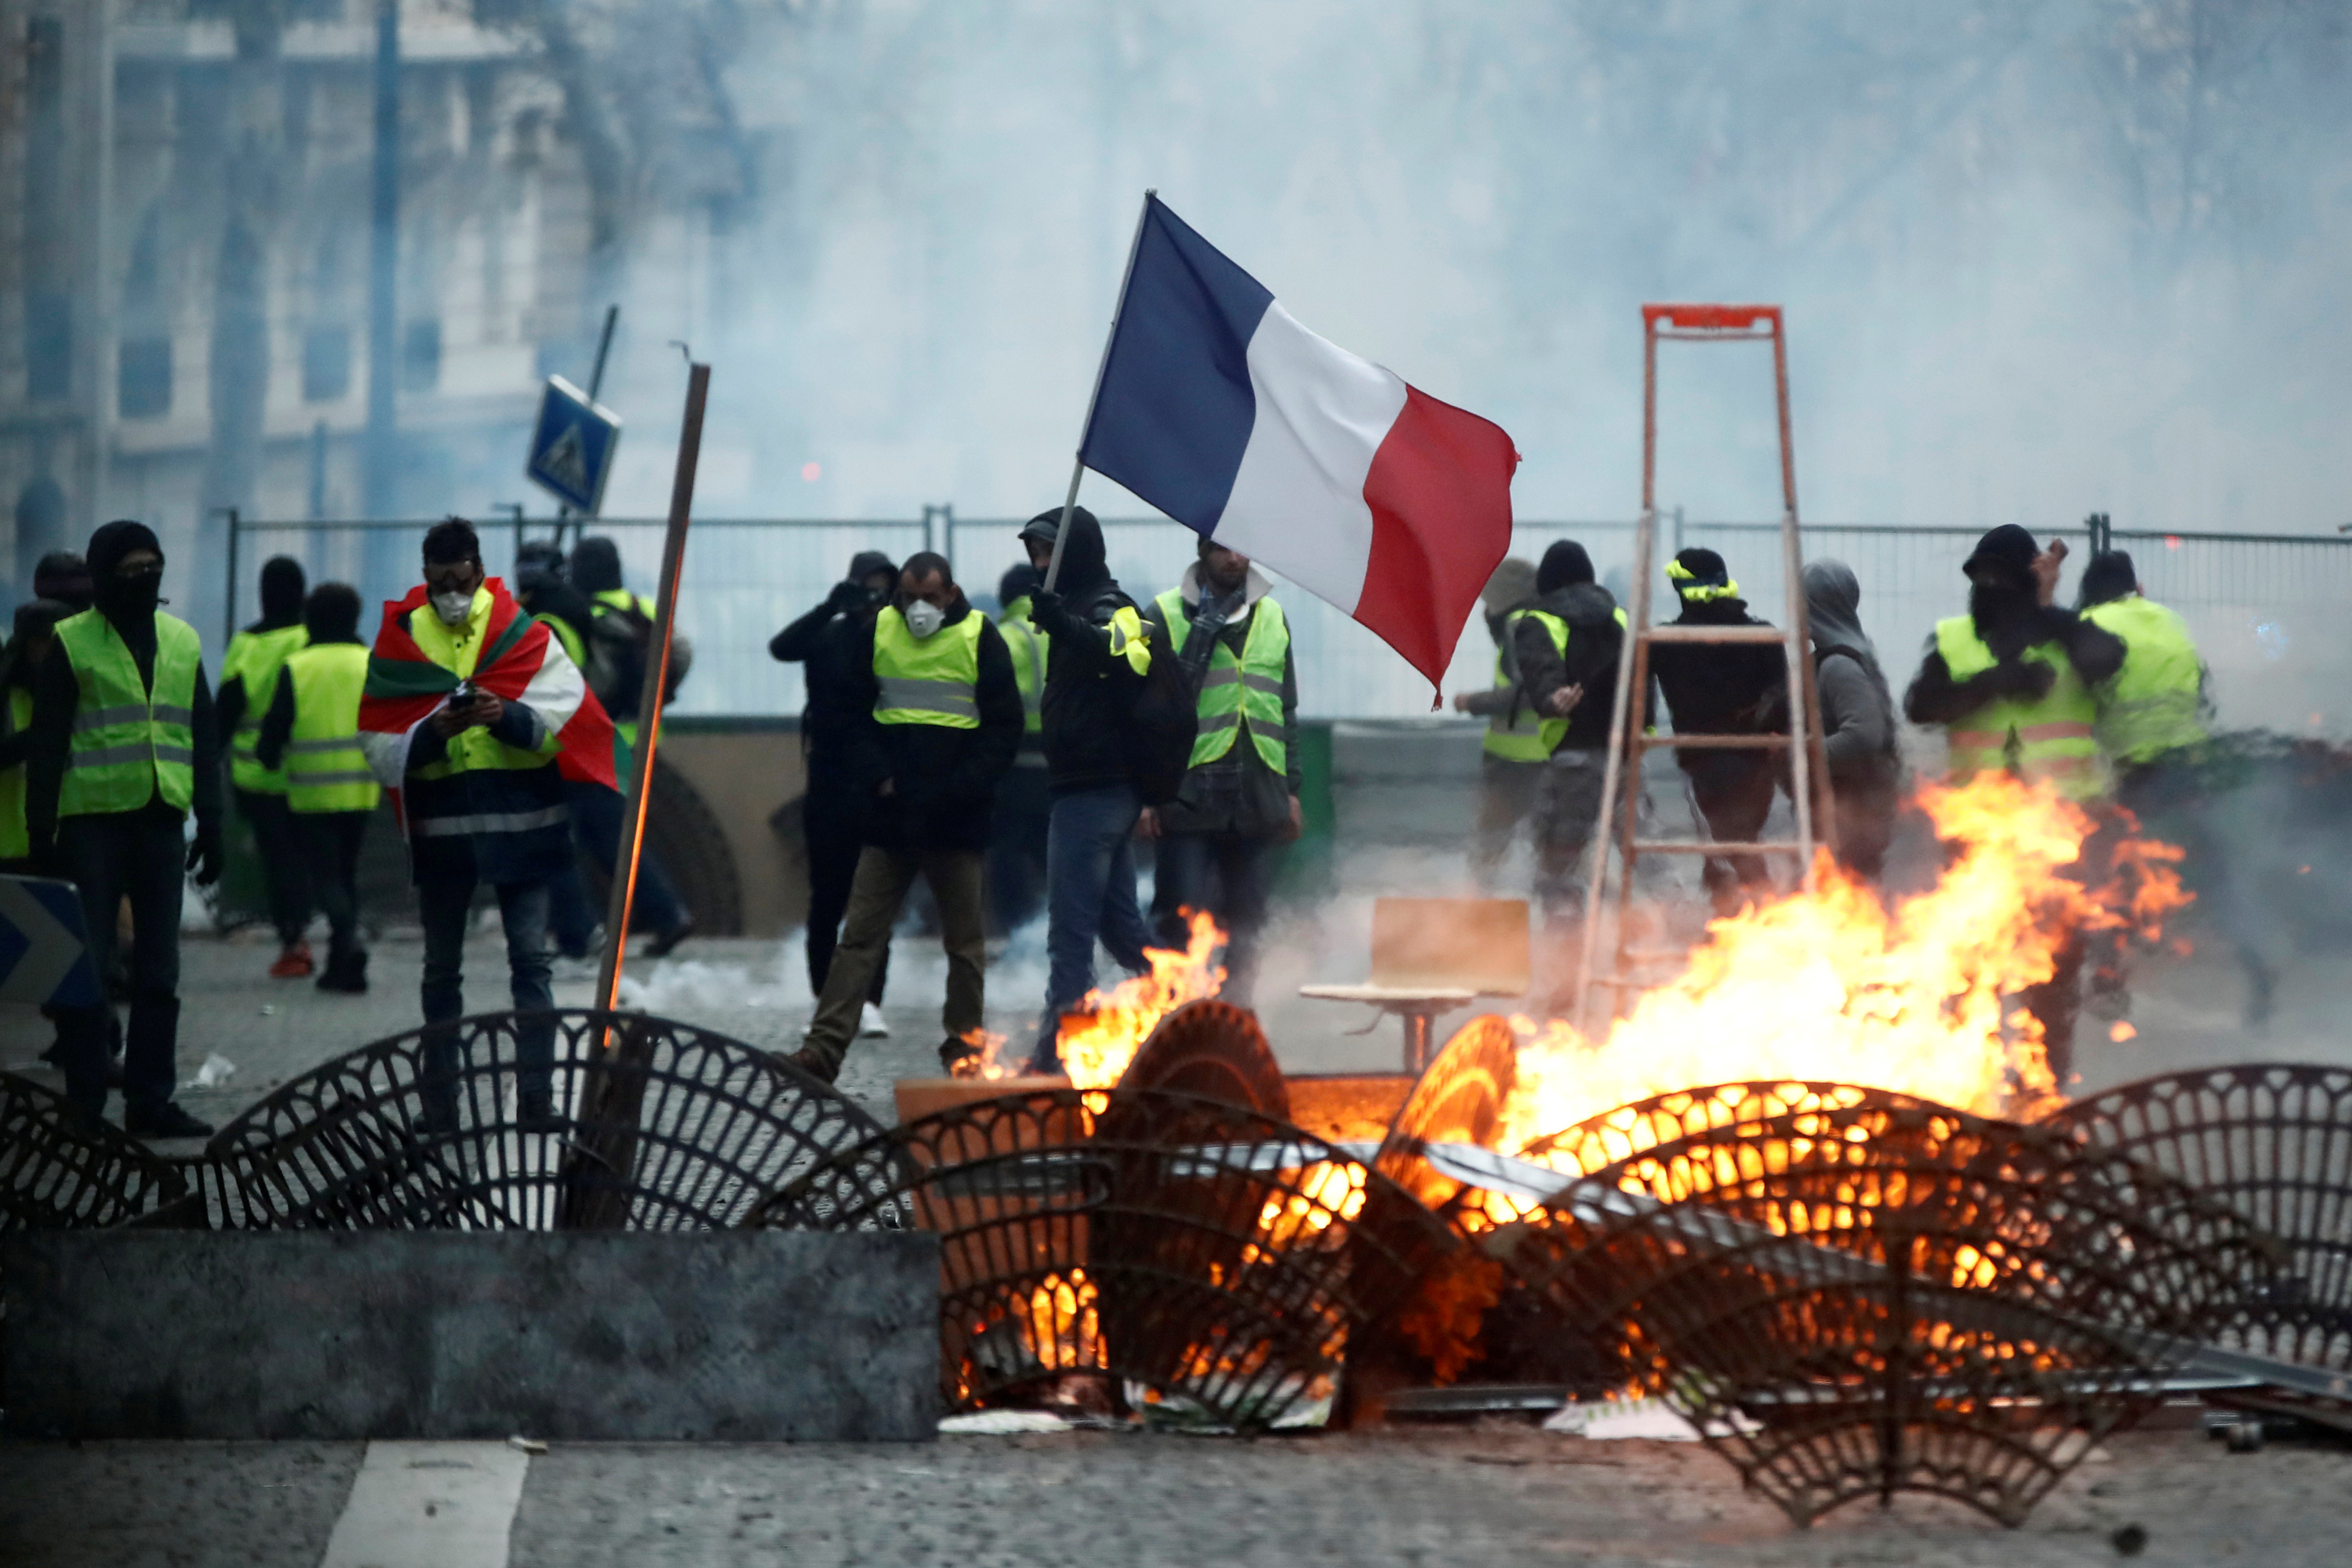 The Gilets Jaunes movement was born initially out of opposition to a tax on fuel